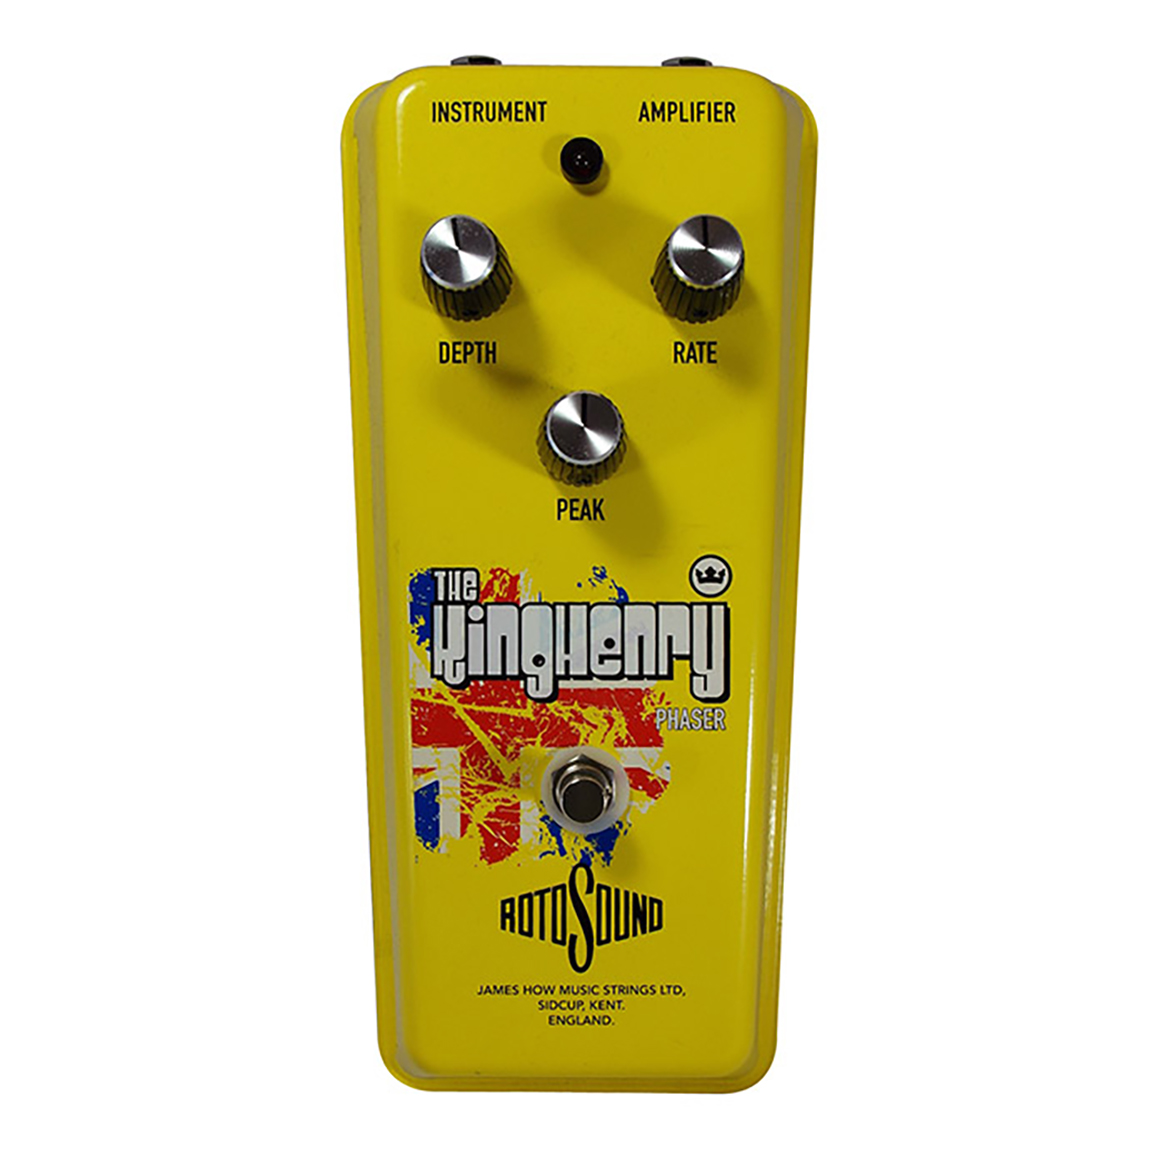 Rotosound King Henry Phaser effects pedal